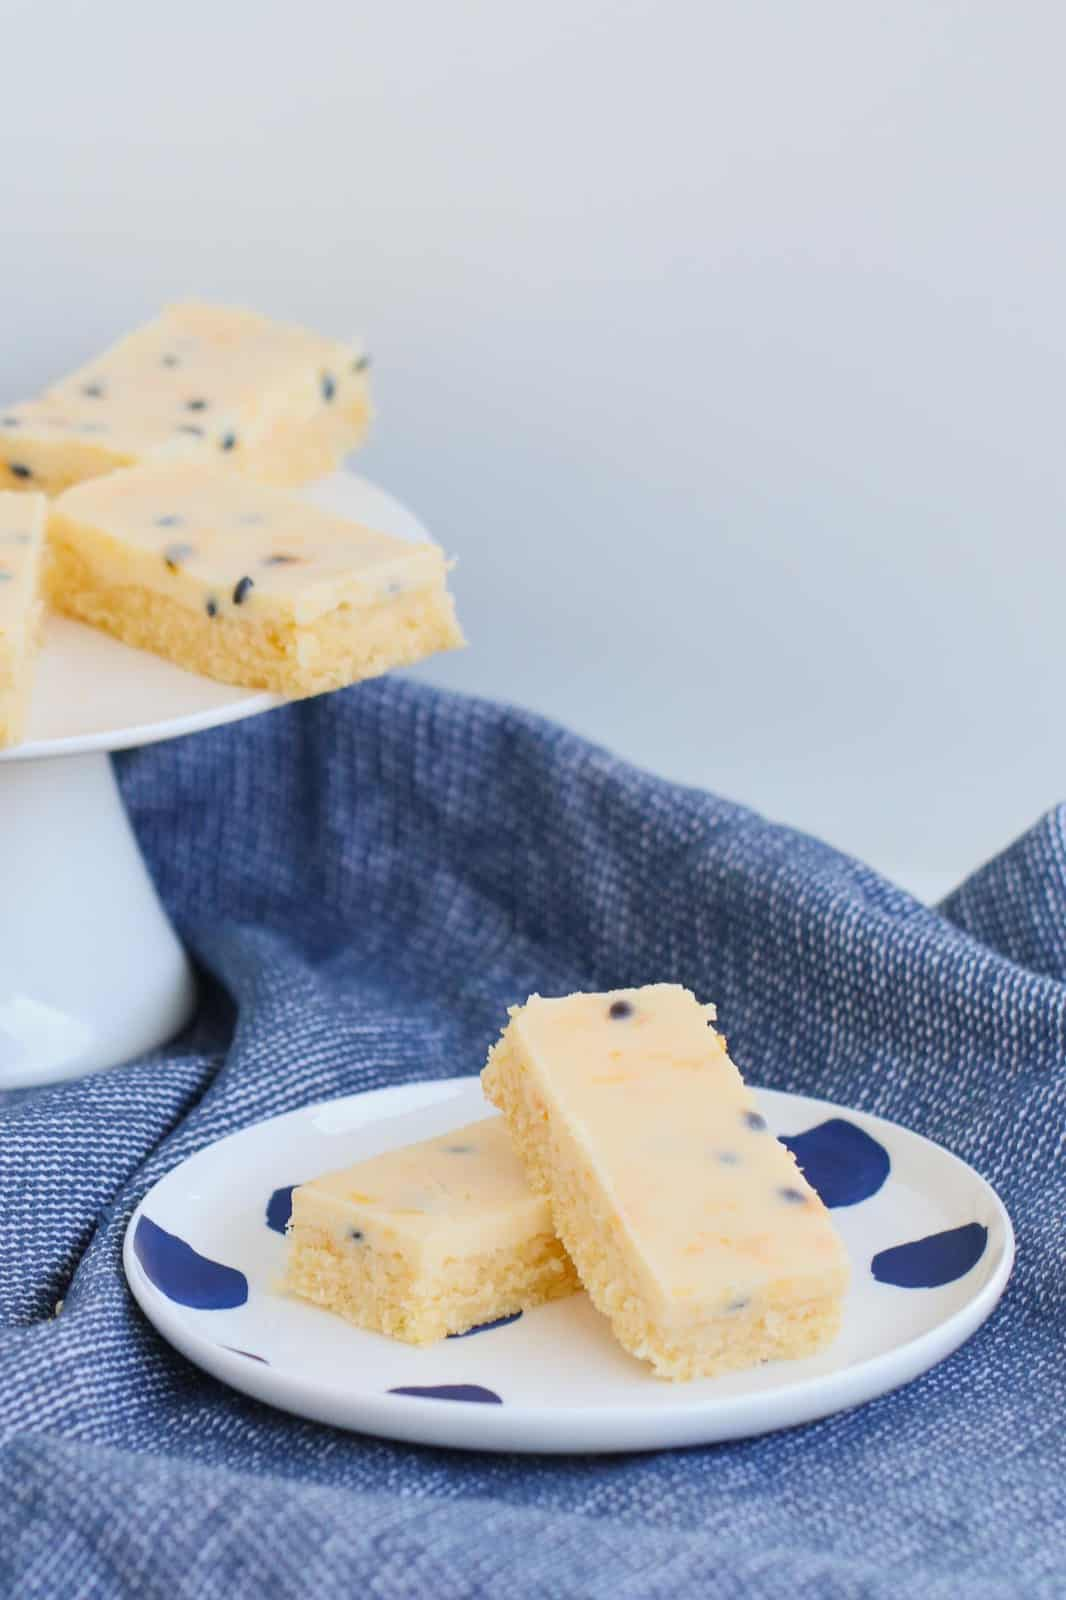 Two pieces of Passionfruit Slice on a white plate with blue dots placed on a blue tea towel.